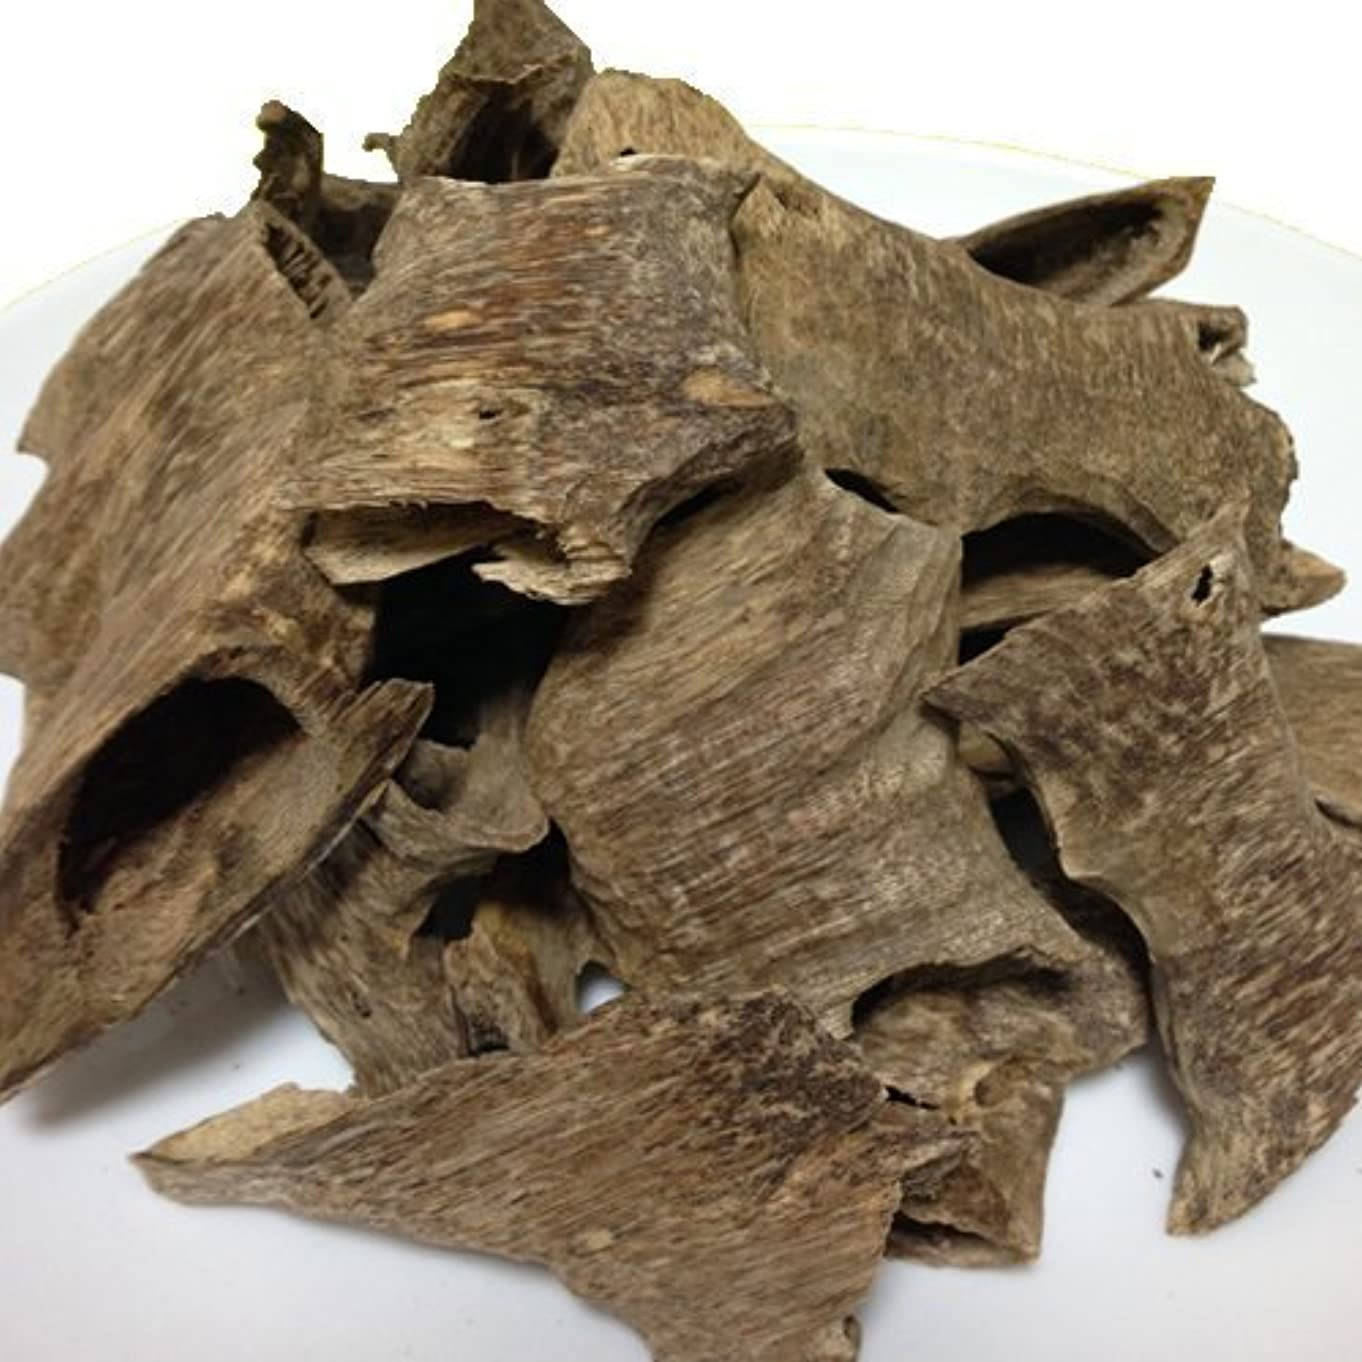 ふざけた高い取得[ Vietnam market ] Agarwood Chips (Aloeswood Agalloch Eaglewood) From Vietnam 3.5 Oz by Vietnam market [並行輸入品]